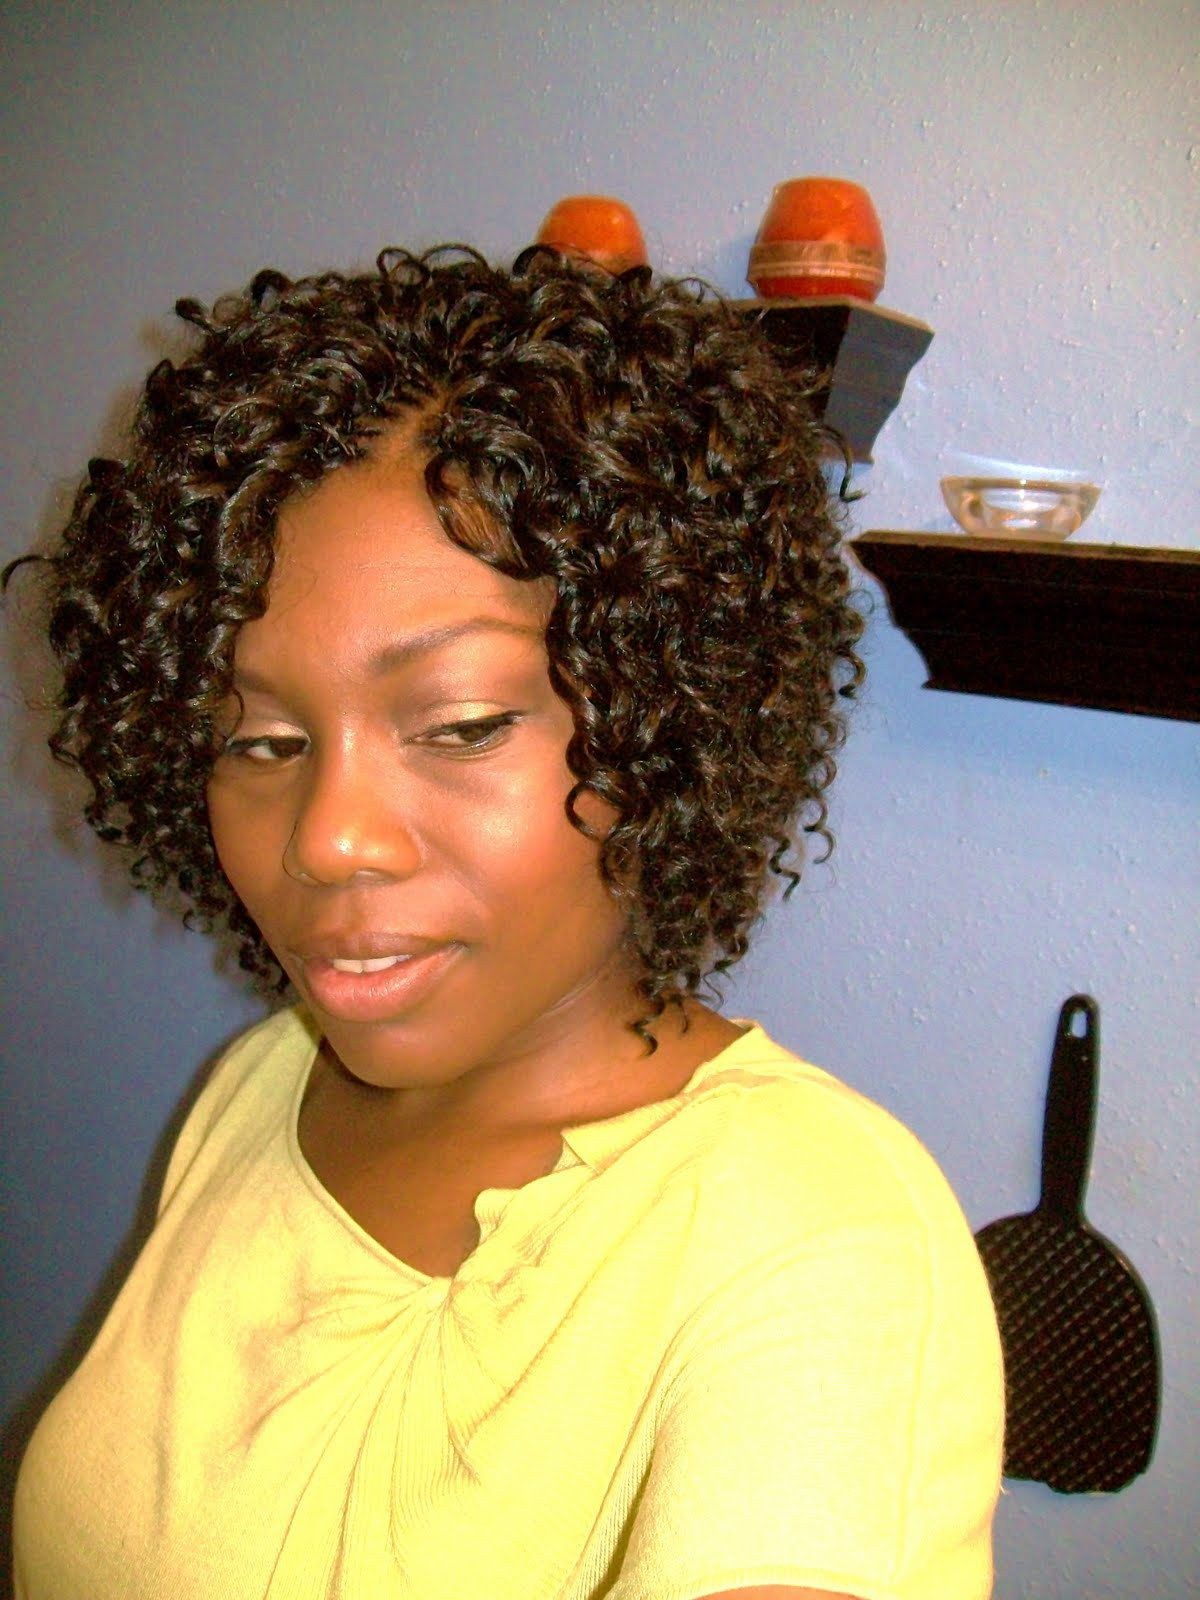 Crochet Braids Hairstyles Stunning Very Short Crochet Braids  Google Search  Hairstyles  Pinterest